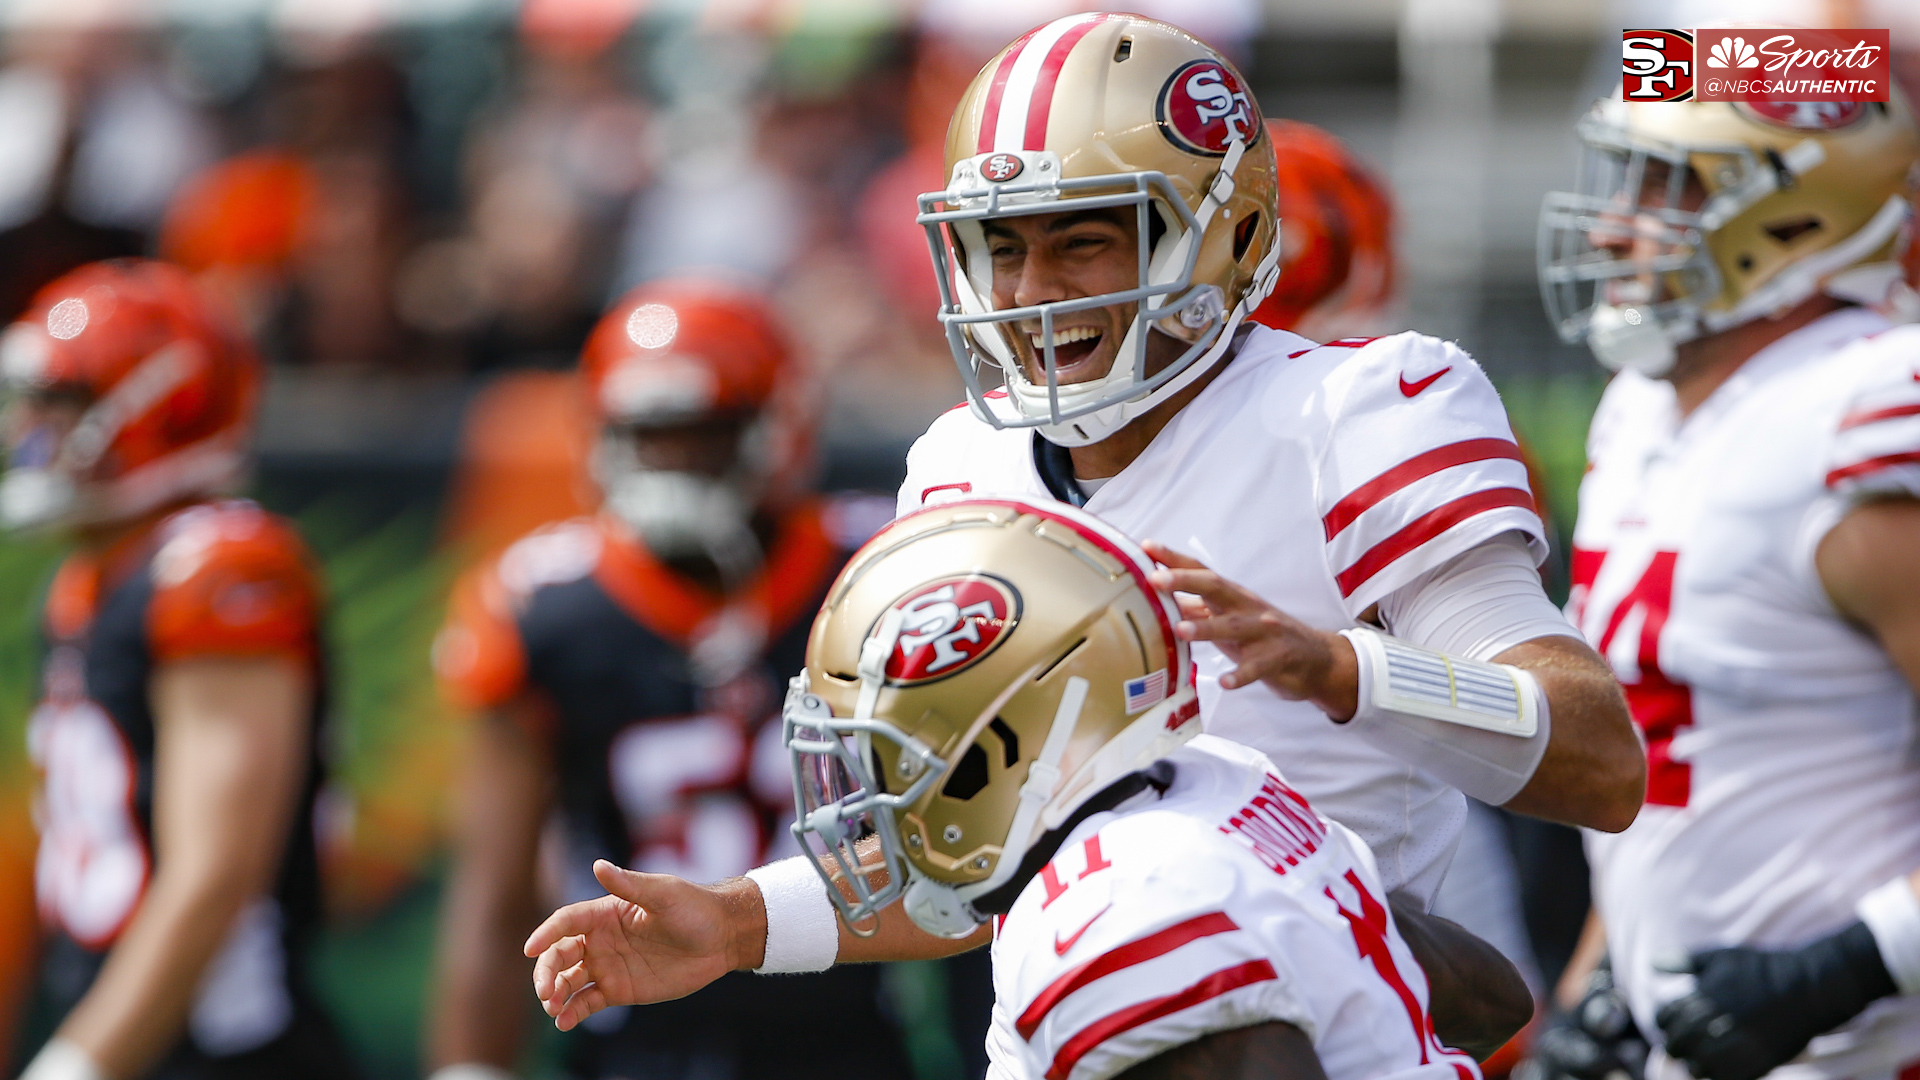 49ers 41, Bengals 17: San Francisco rolls to 2-0 start to 2019 NFL